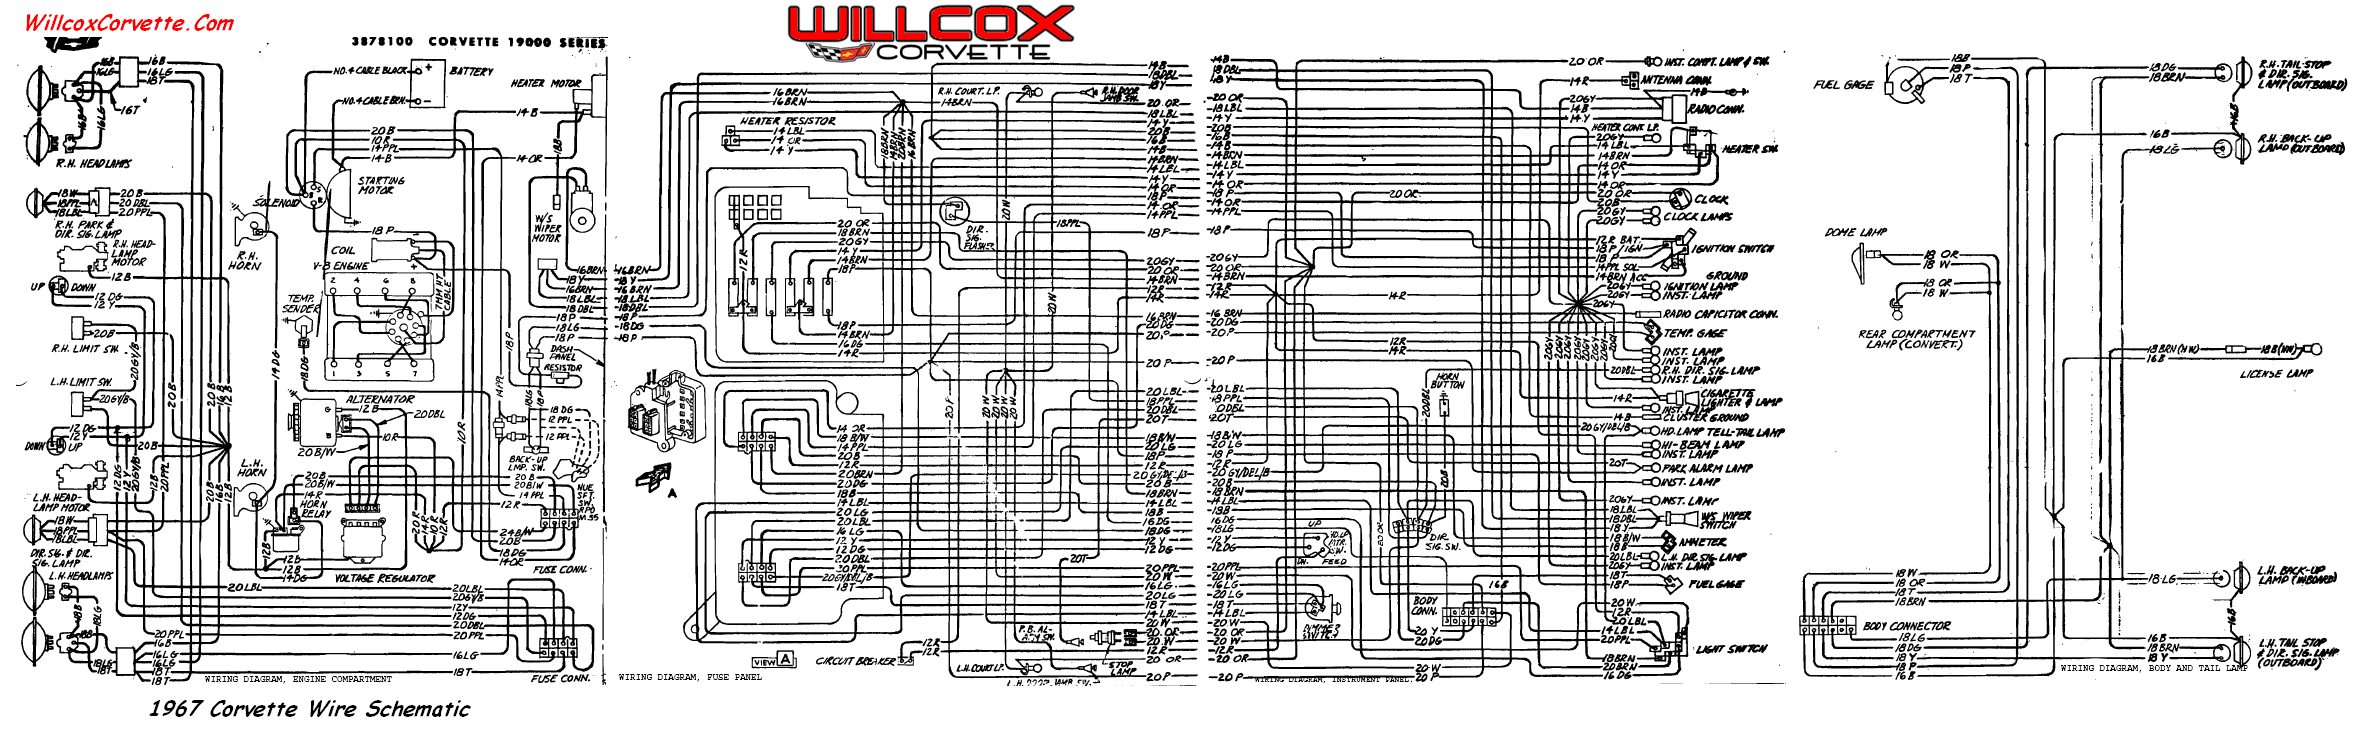 67 wire schematic for tracing wires 1973 corvette wiring diagram 1973 wiring diagrams instruction 58 corvette wiring diagram at soozxer.org